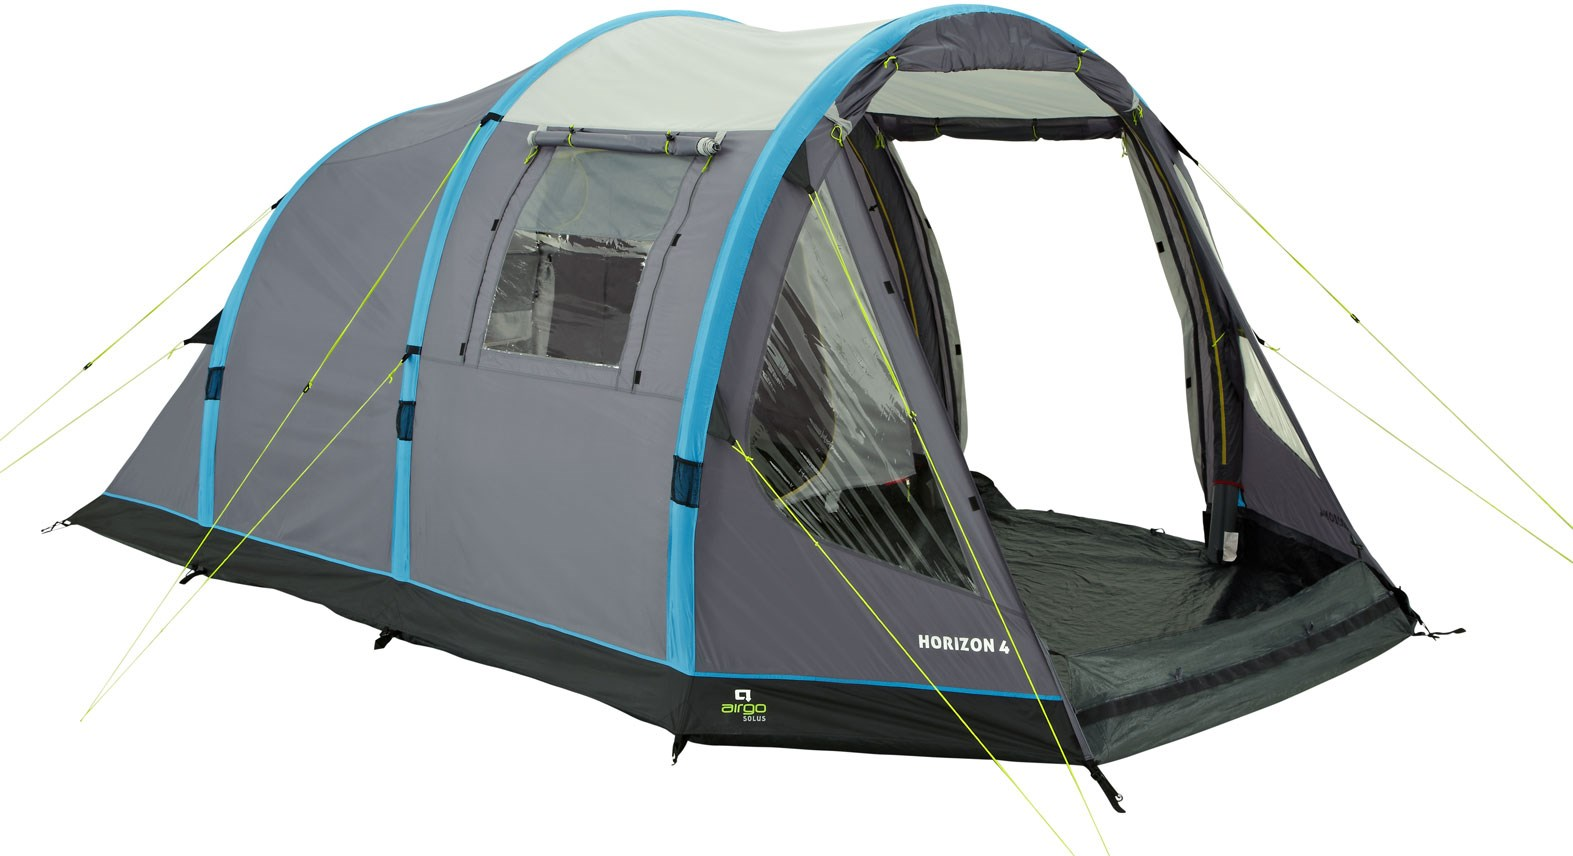 sc 1 st  GO Outdoors & Airgo Solus Horizon 4 Inflatable Tent | GO Outdoors